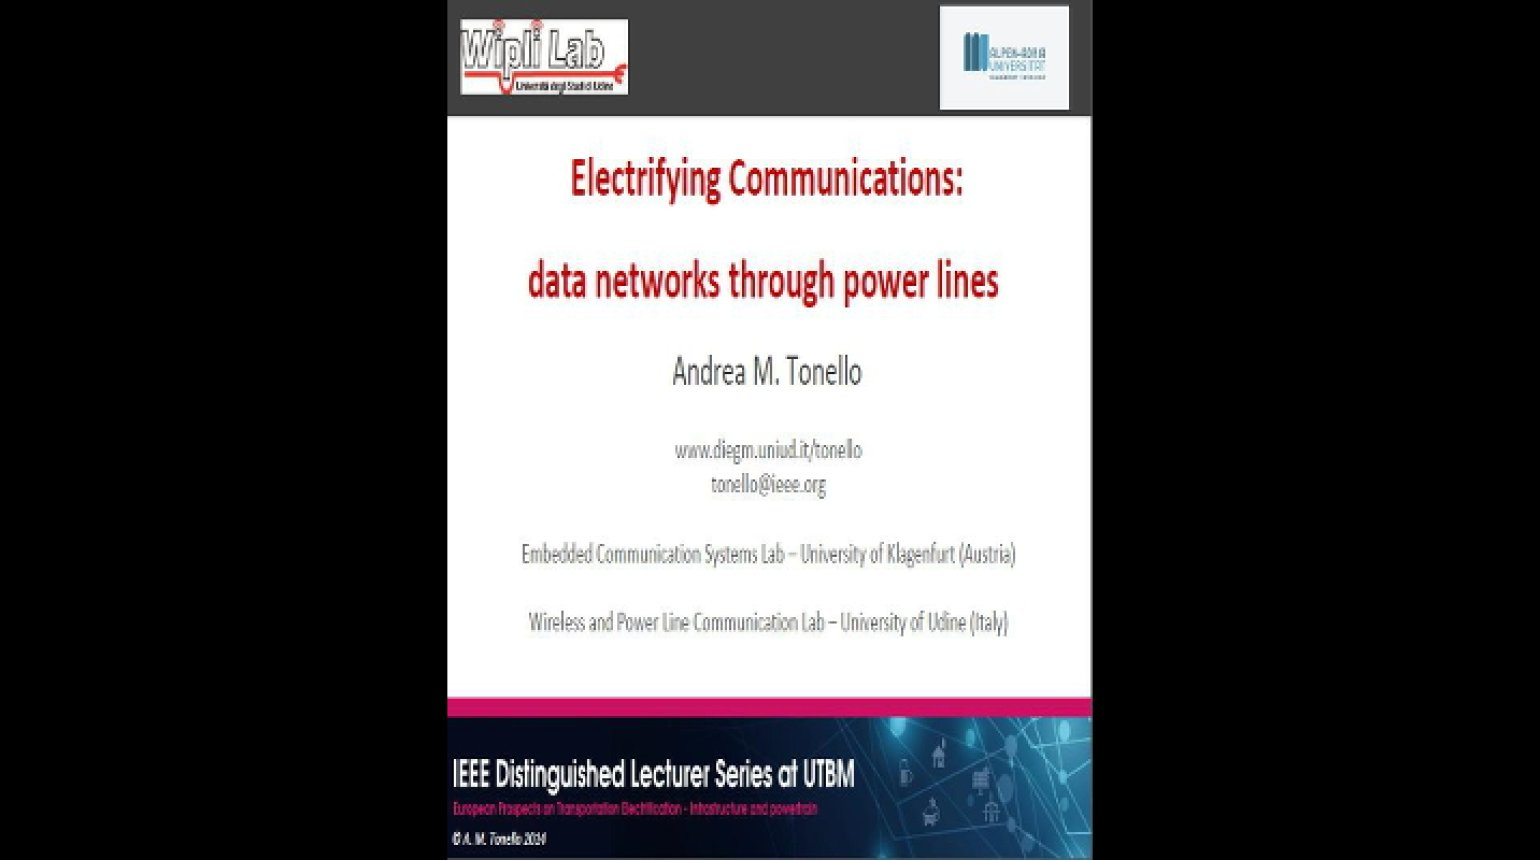 Video - Electrifying Communications: Data Networks Through Power Lines